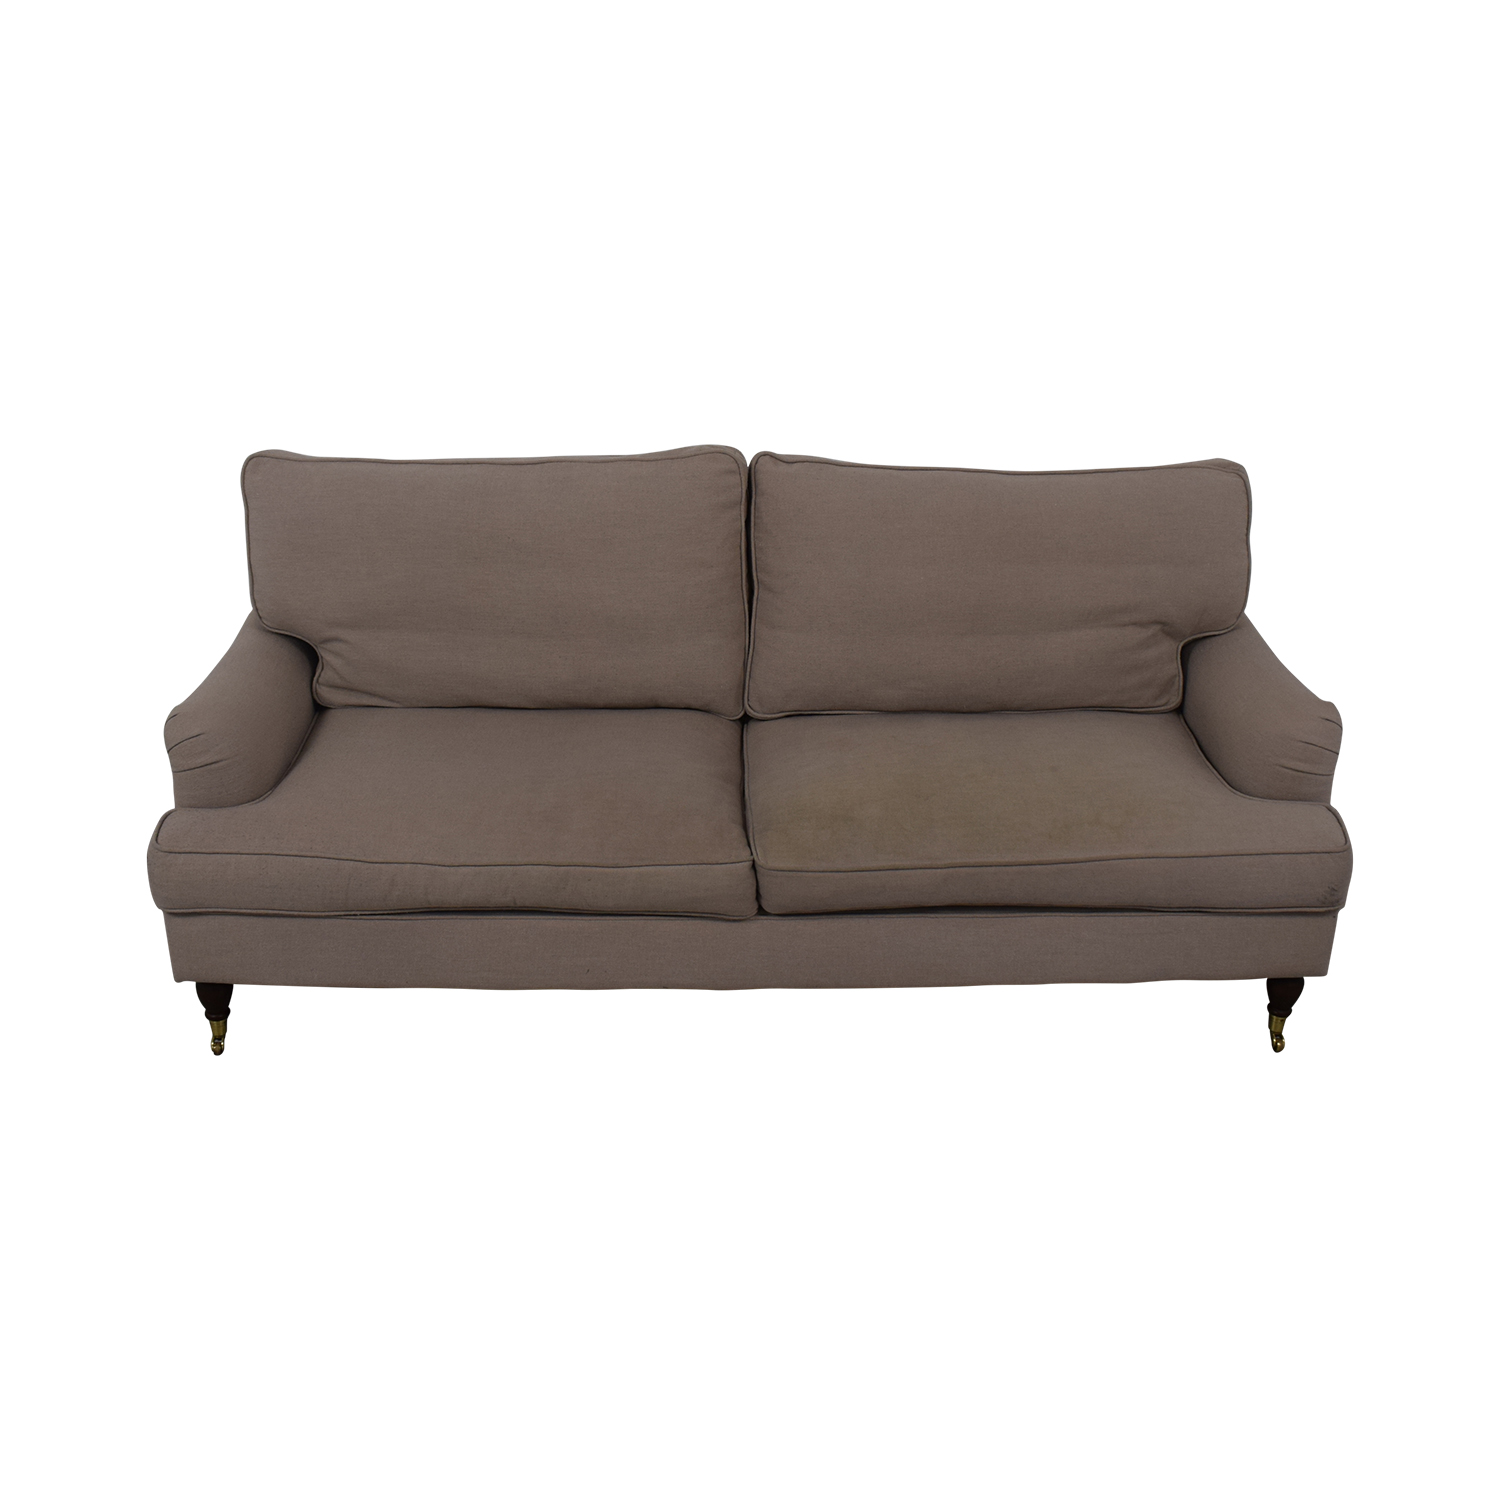 shop Safavieh Roll Arm Sofa Safavieh